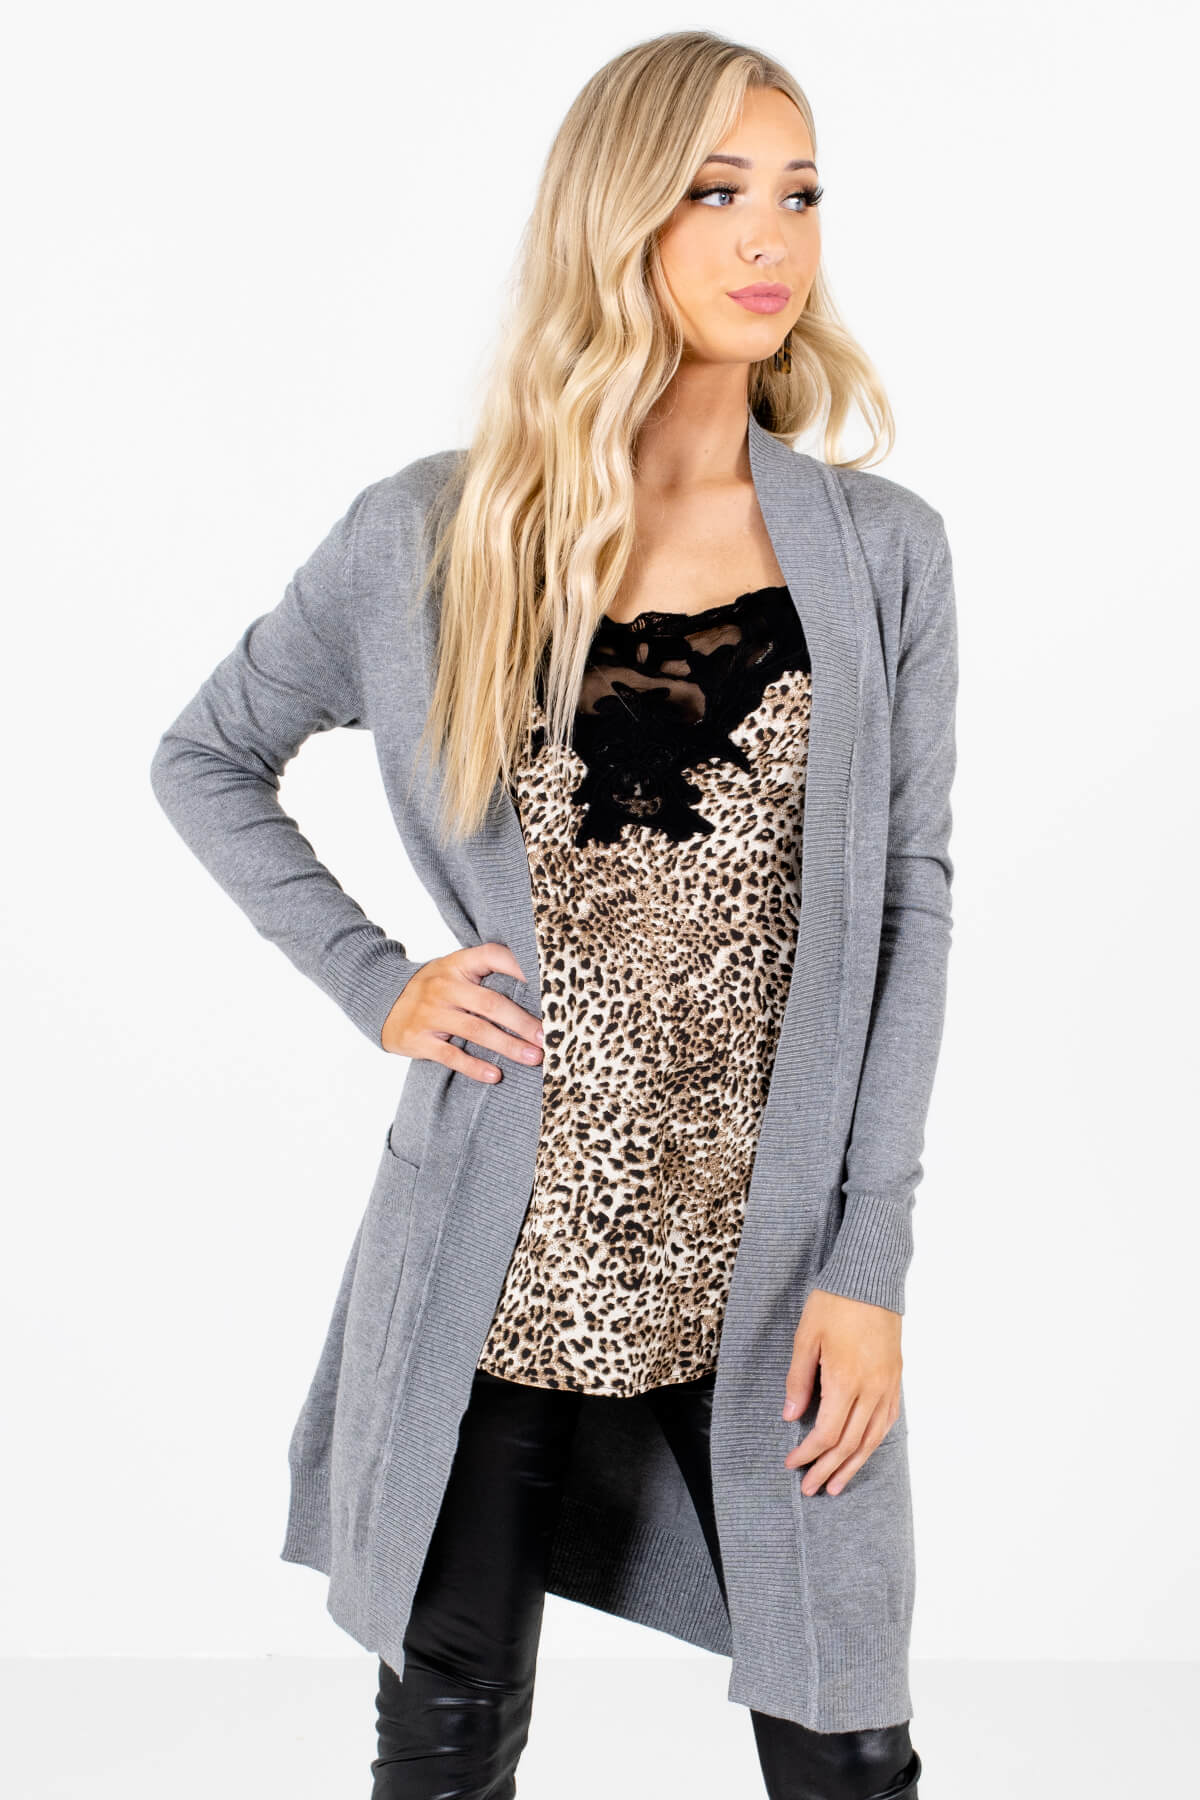 Heather Gray Long Length Boutique Cardigans for Women